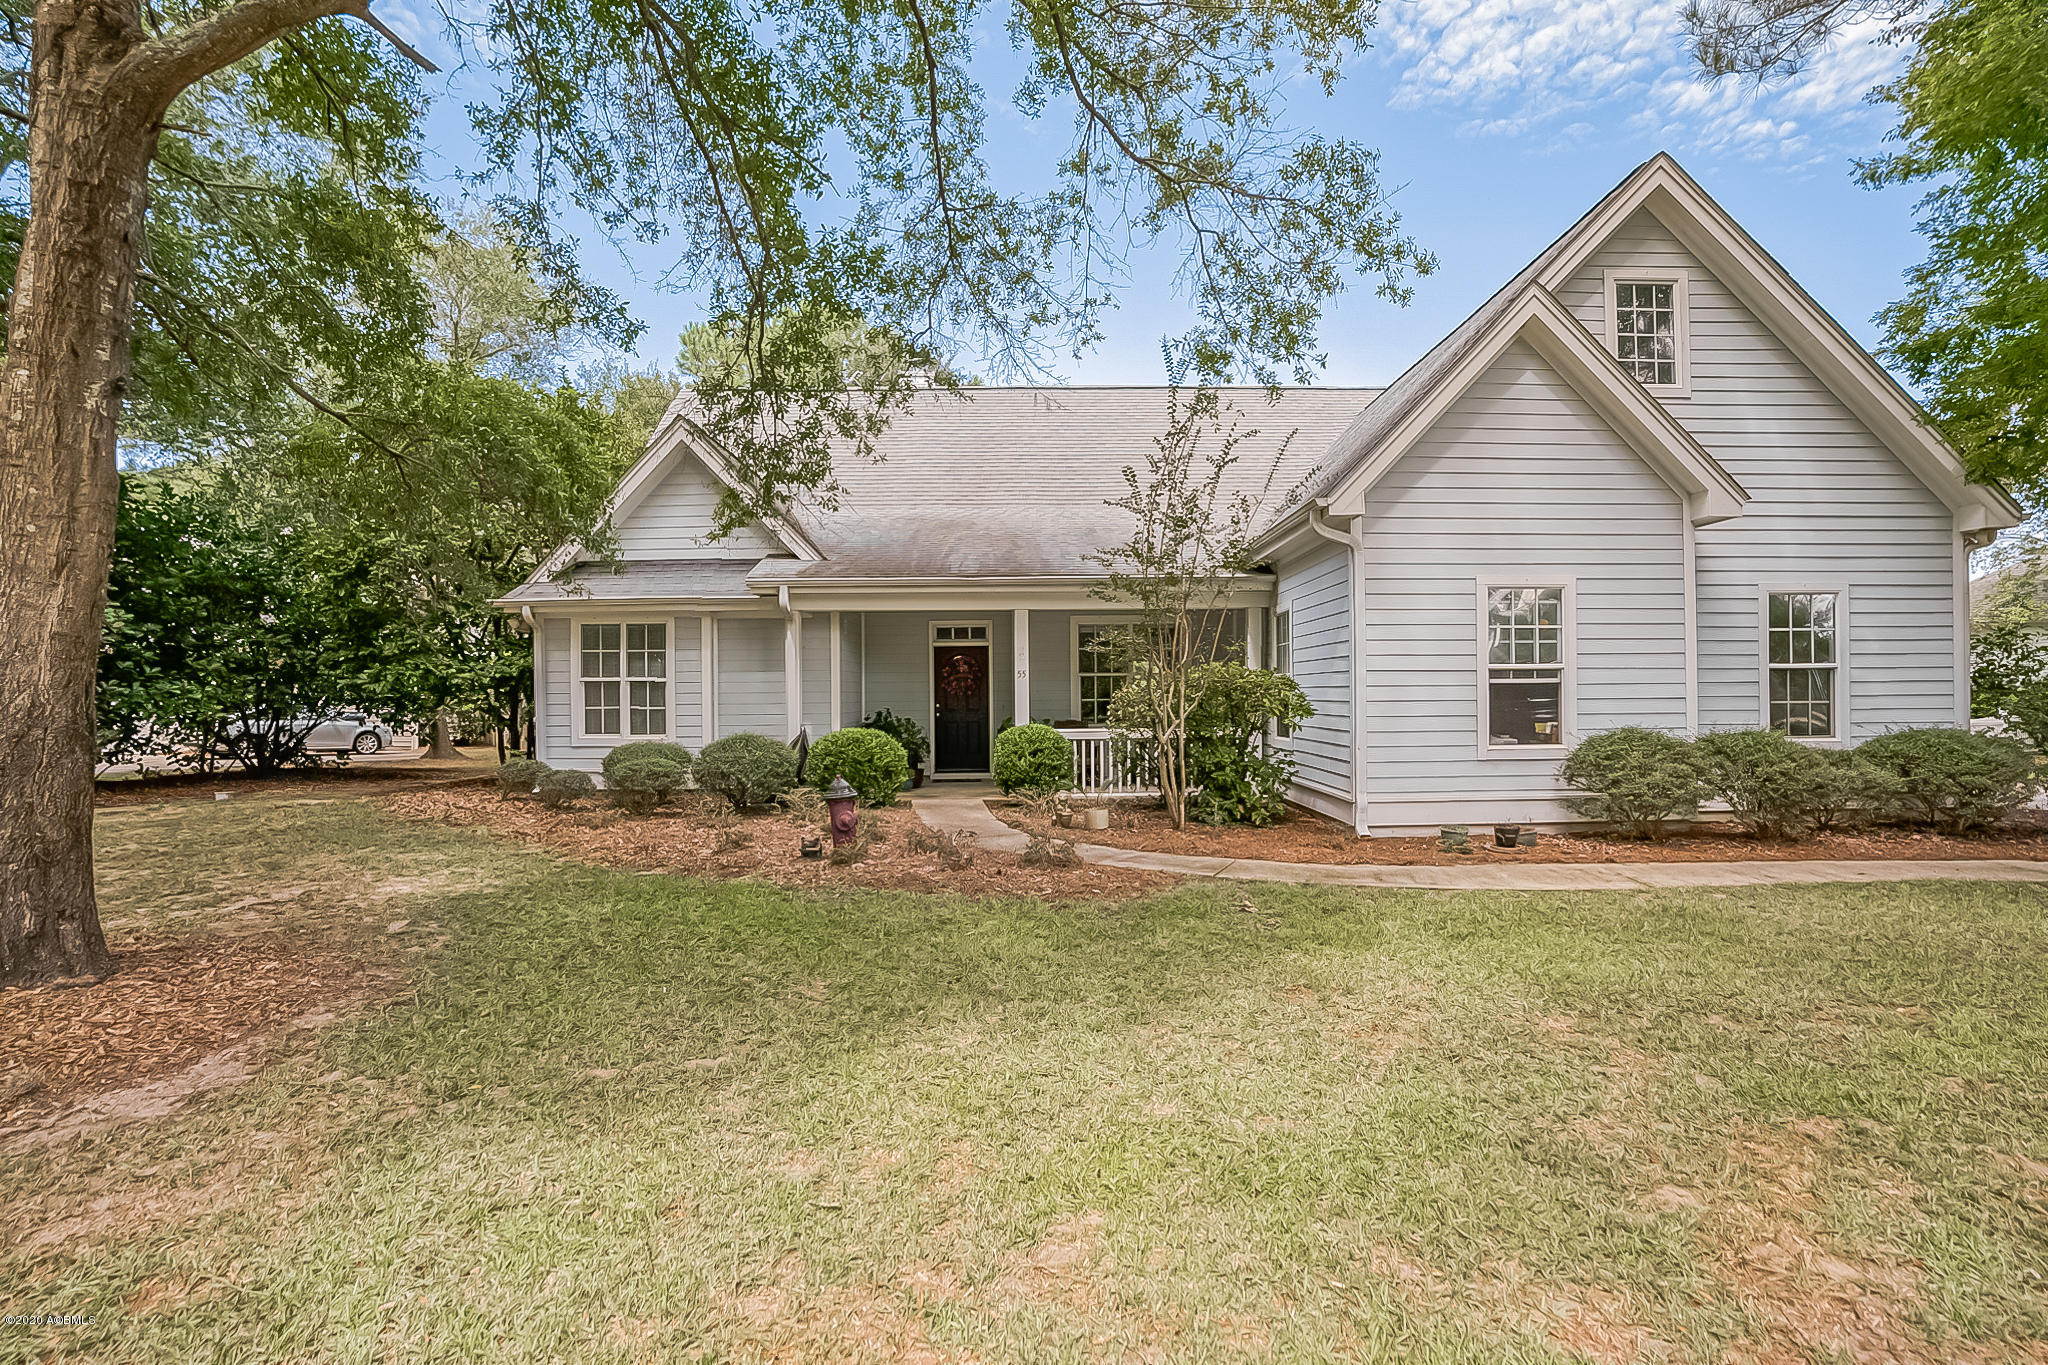 Photo of 55 Downing Drive, Beaufort, SC 29907